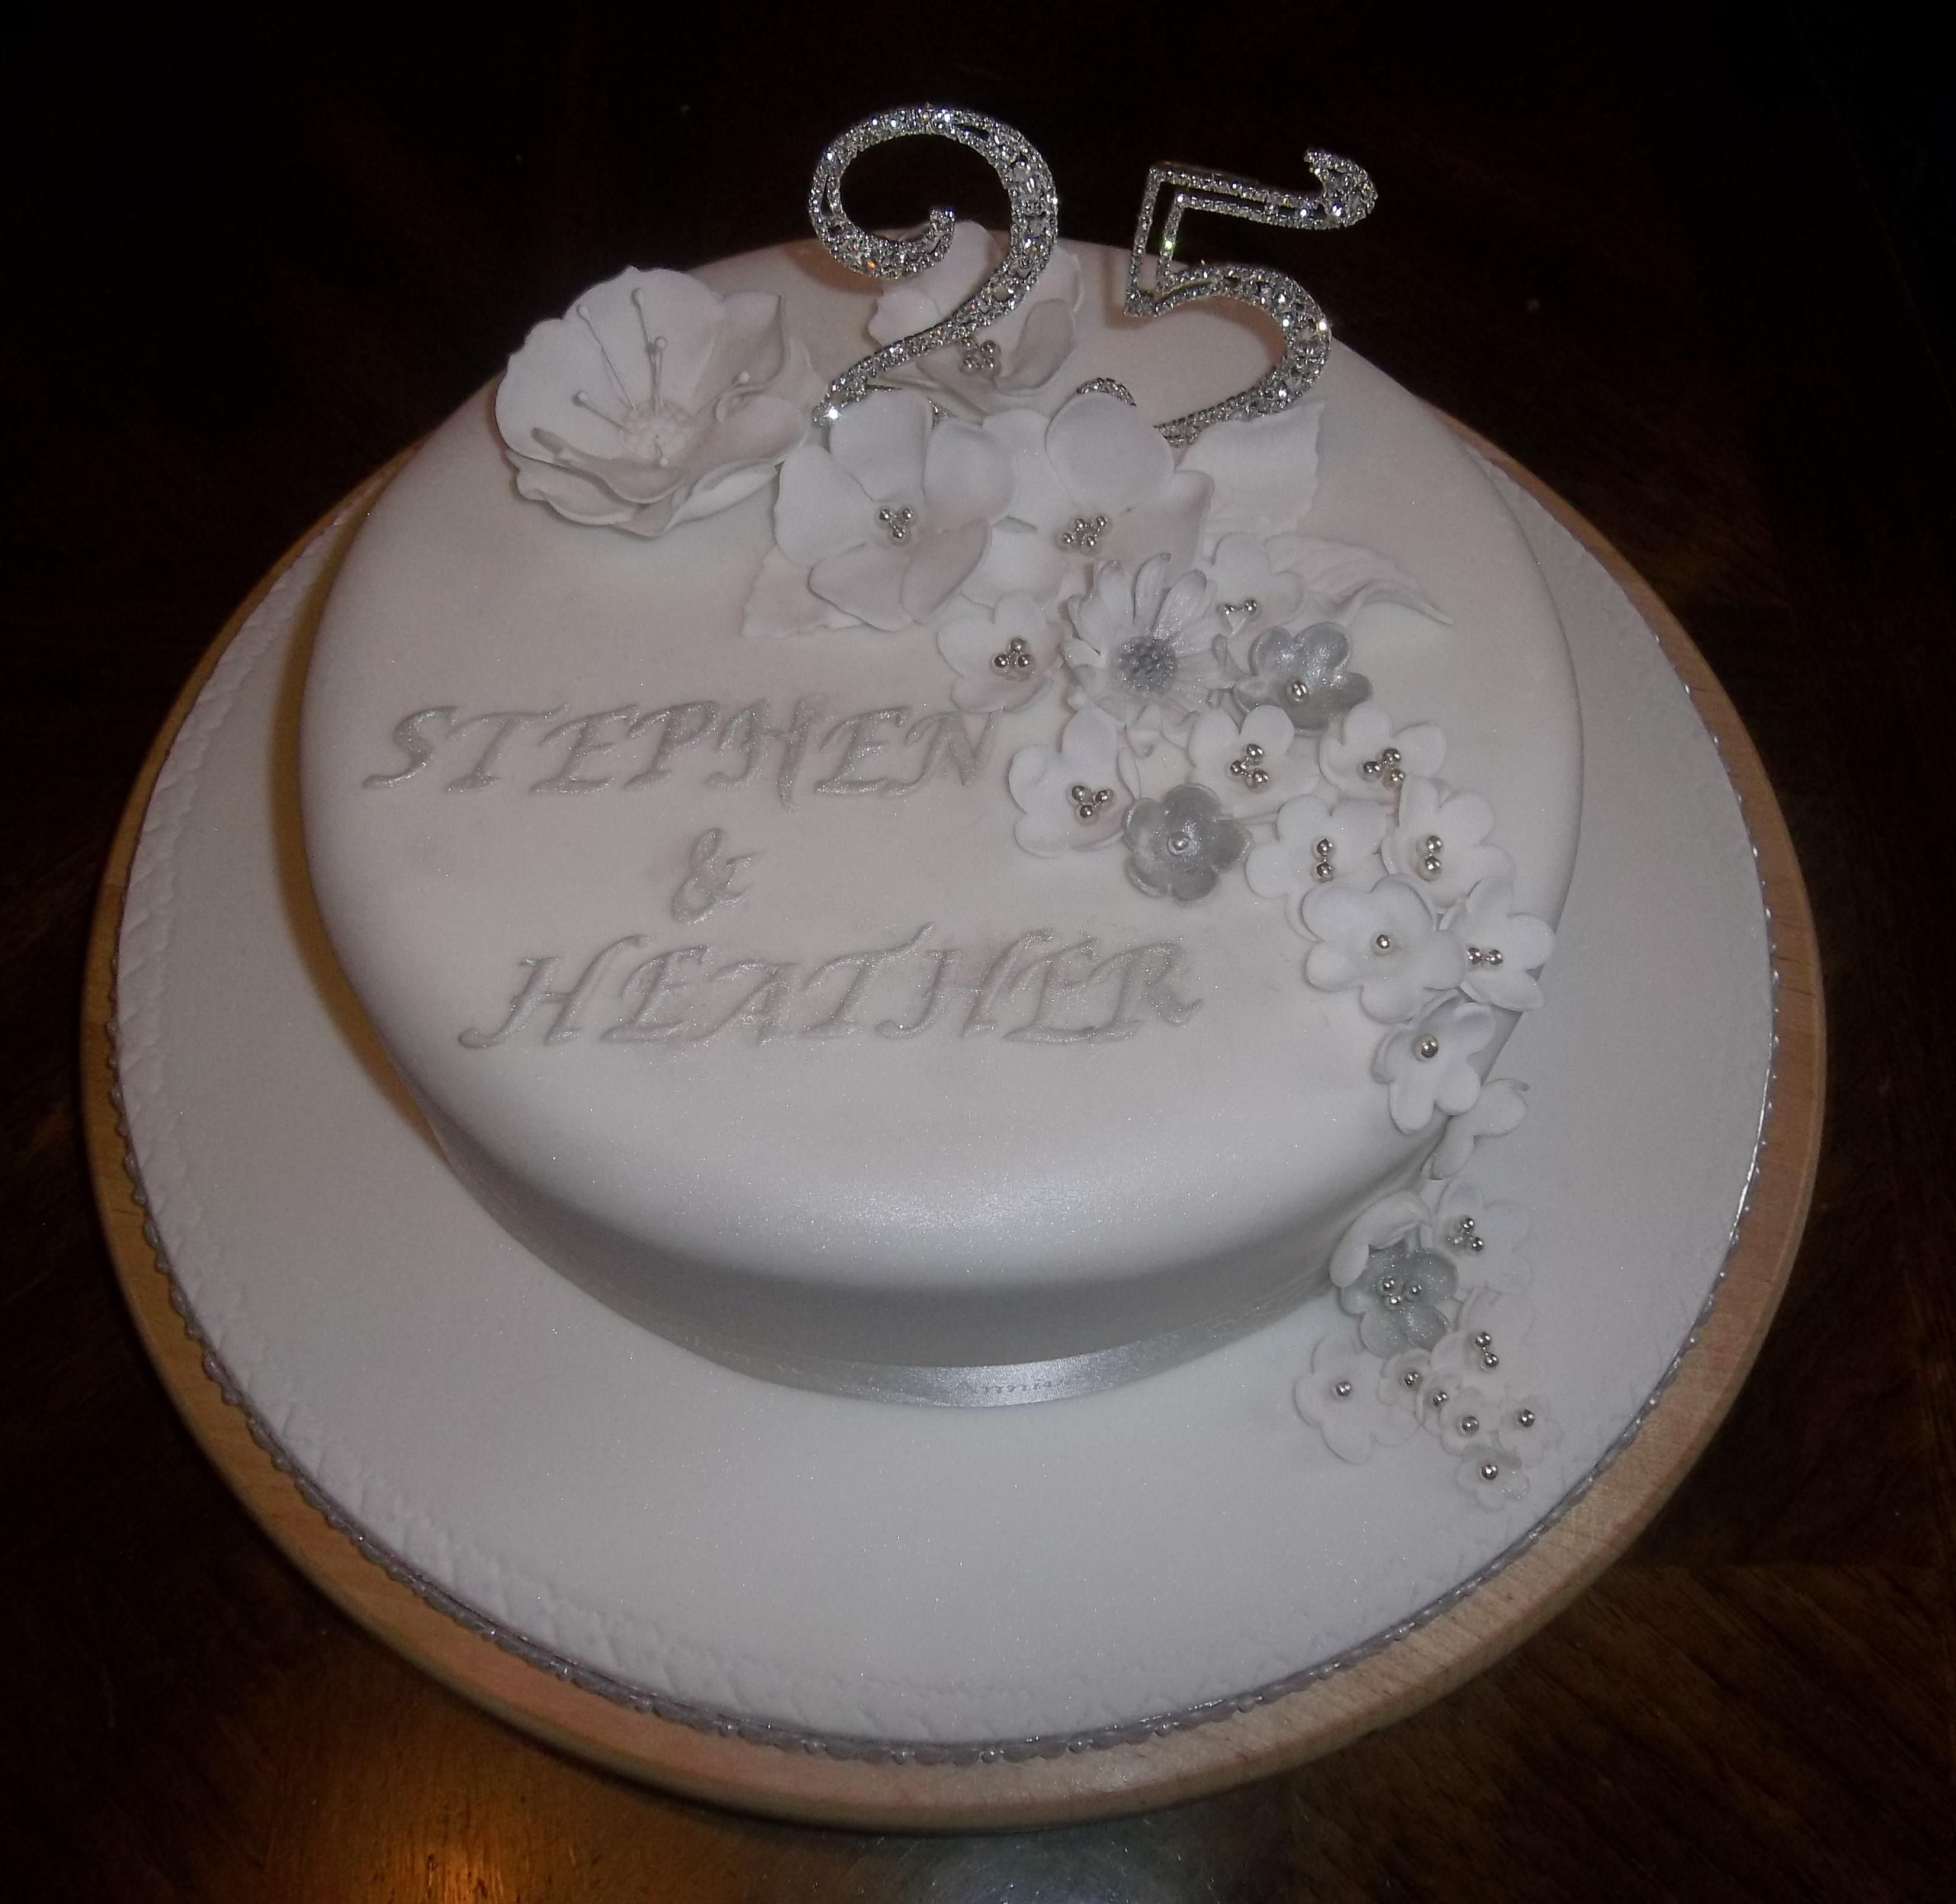 Silver Wedding Silver Wedding Cake For My Friends I Wanted To